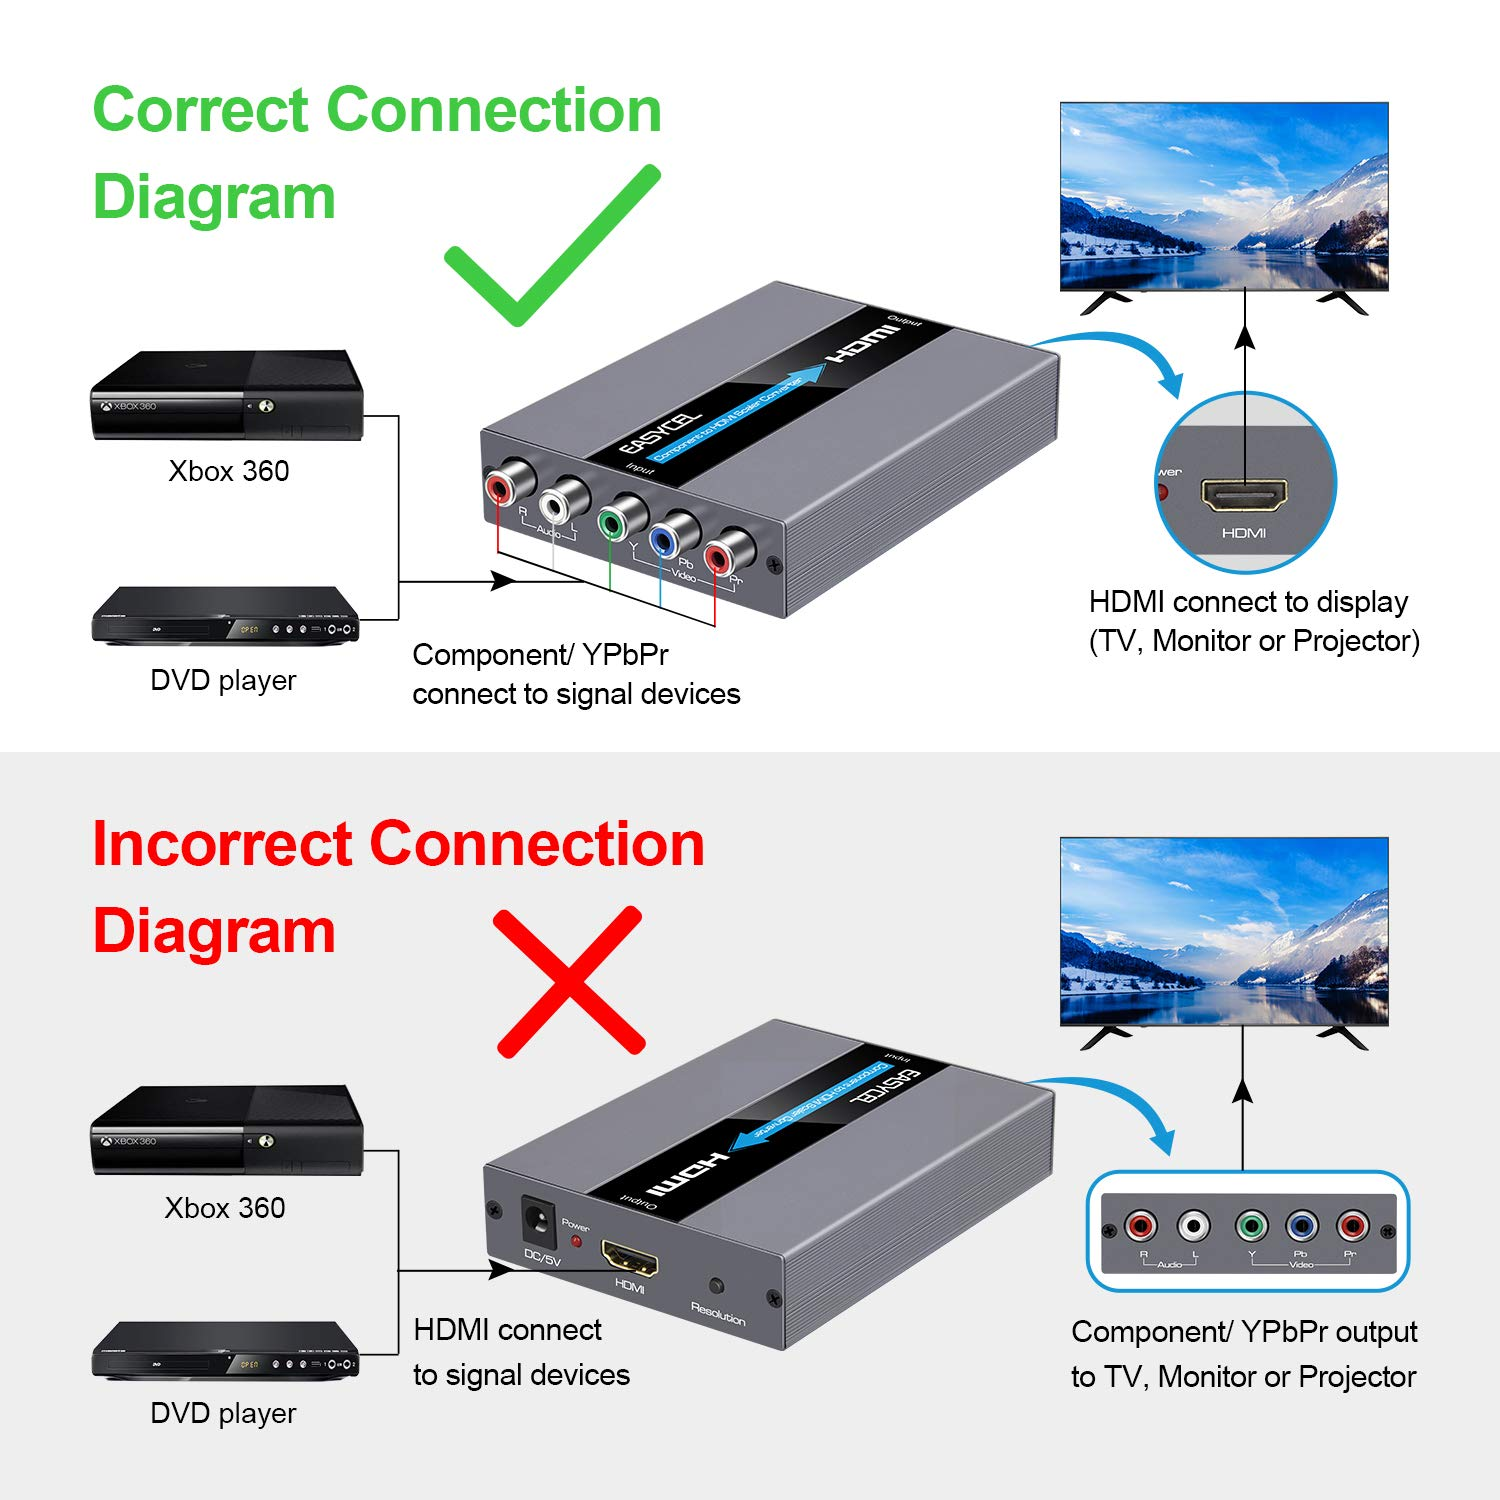 ypbpr component to hdmi scaler converter, component ypbpr input hdmi  output for dvd, psp, xbox 360, ps2, nintendo ngc, bose 3-2-1(with scaler  function):